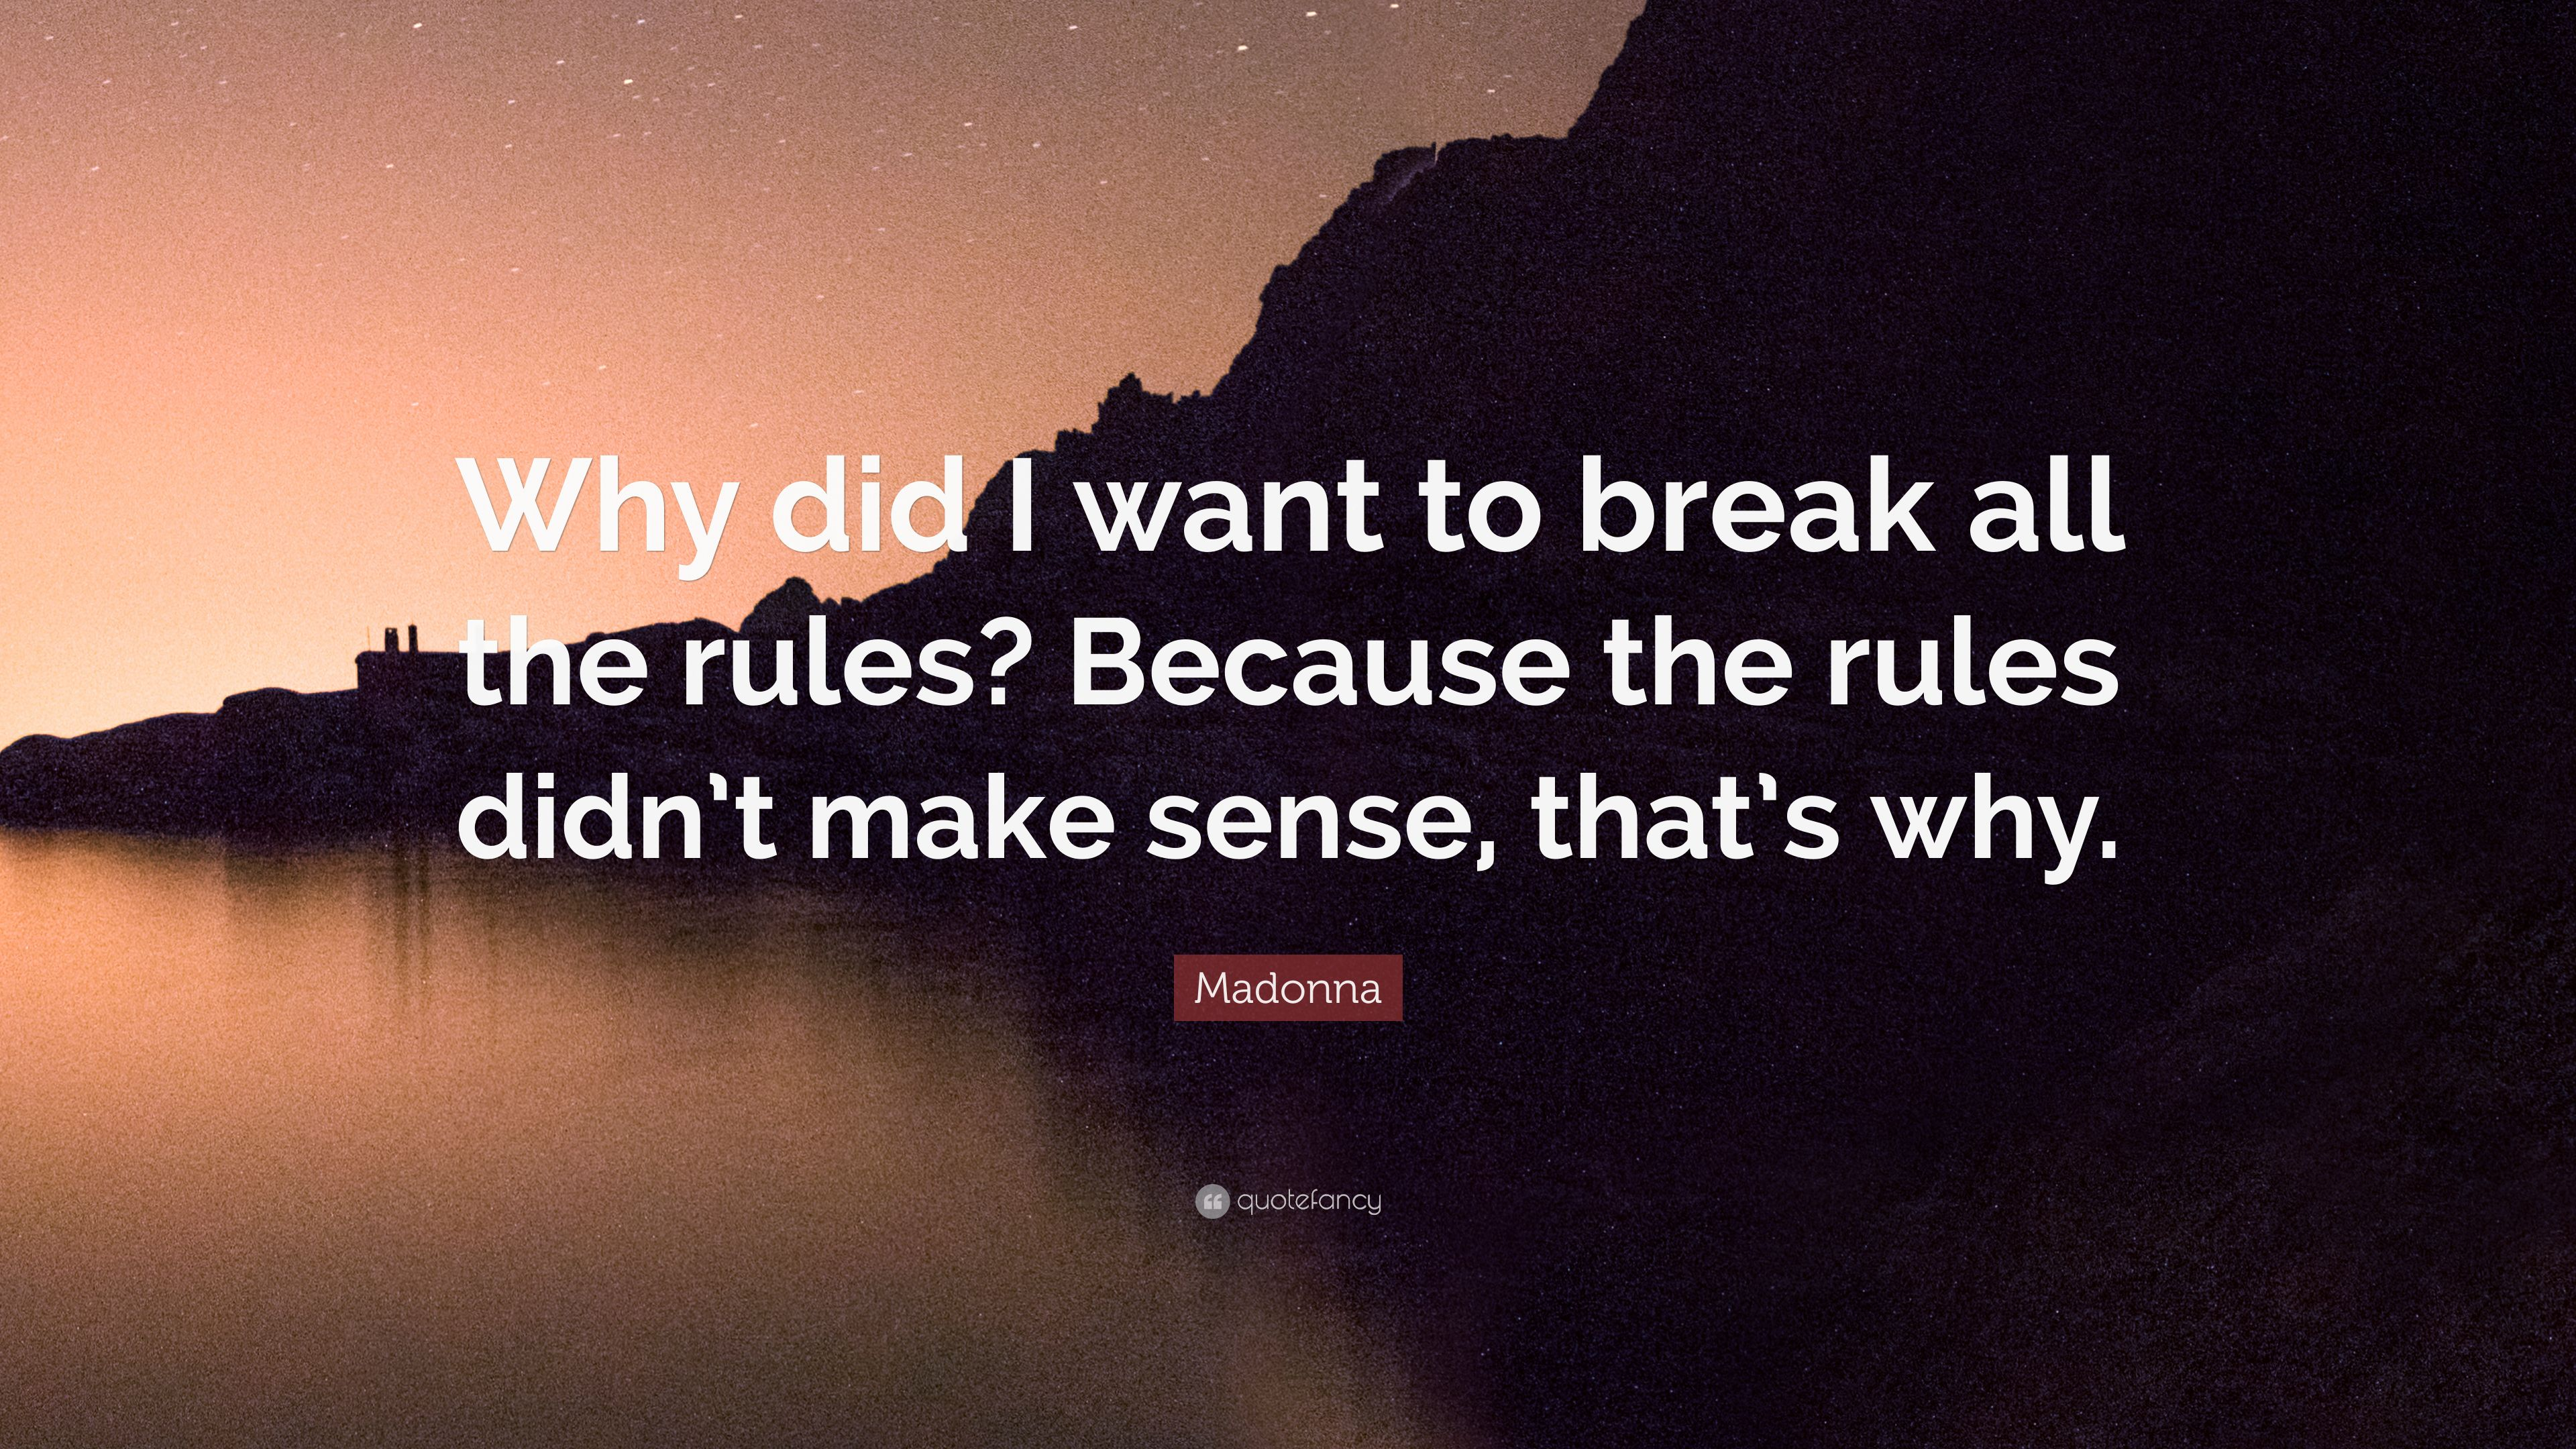 madonna quote u201cwhy did i want to break all the rules because the